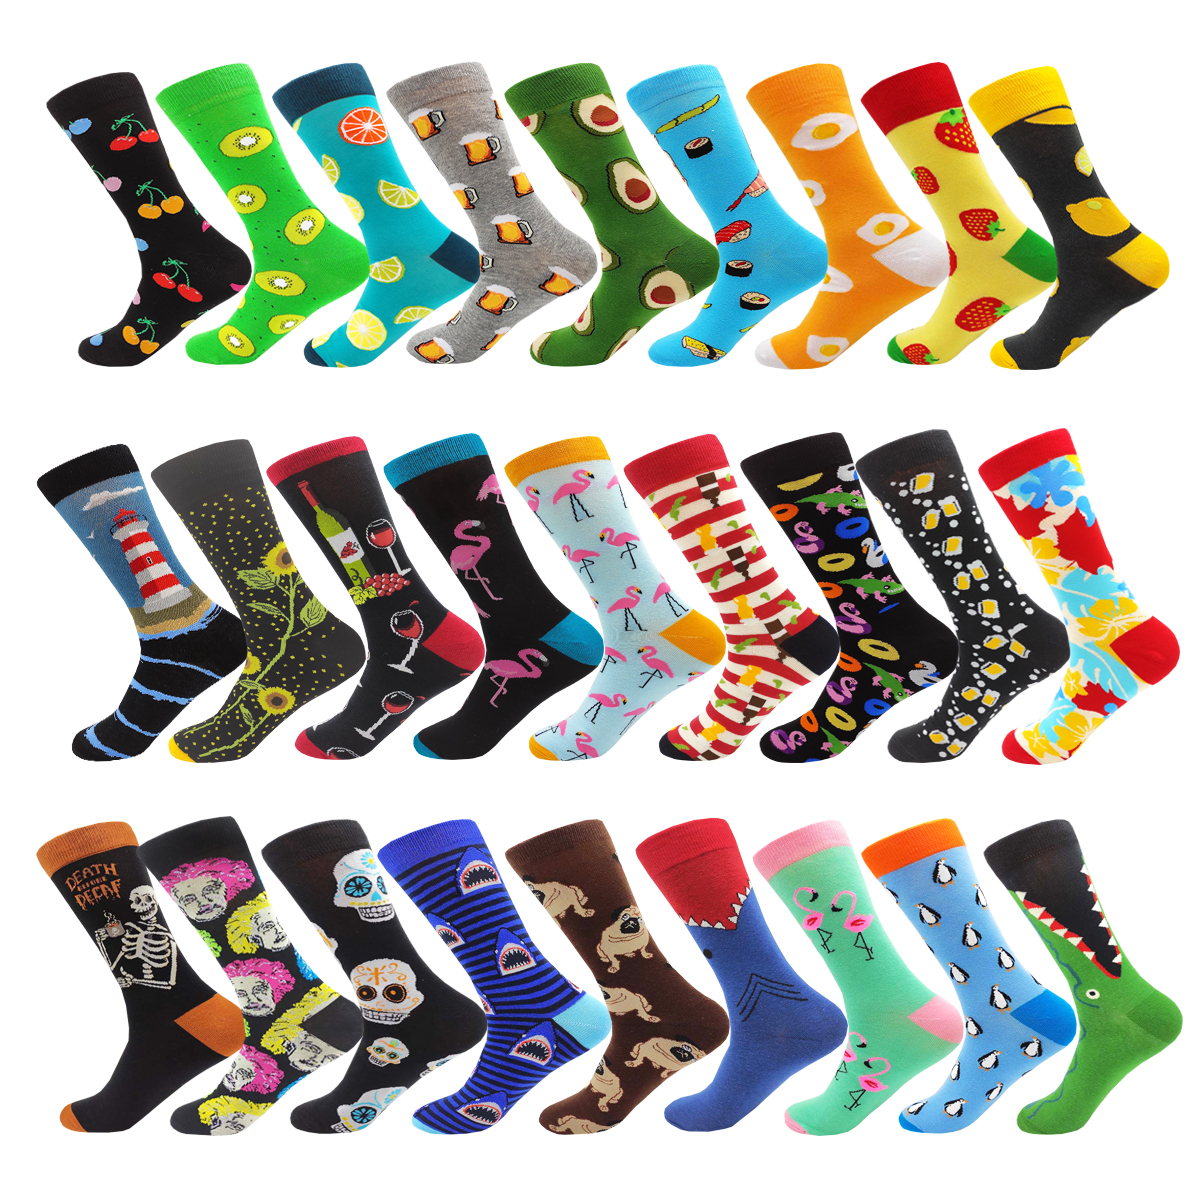 Novelty Fashion Harajuku Kawaii Cotton Women&mens Socks Cute Flamingo Banana Egg Beer Animal Printed Happy Funny Socks Size38-46